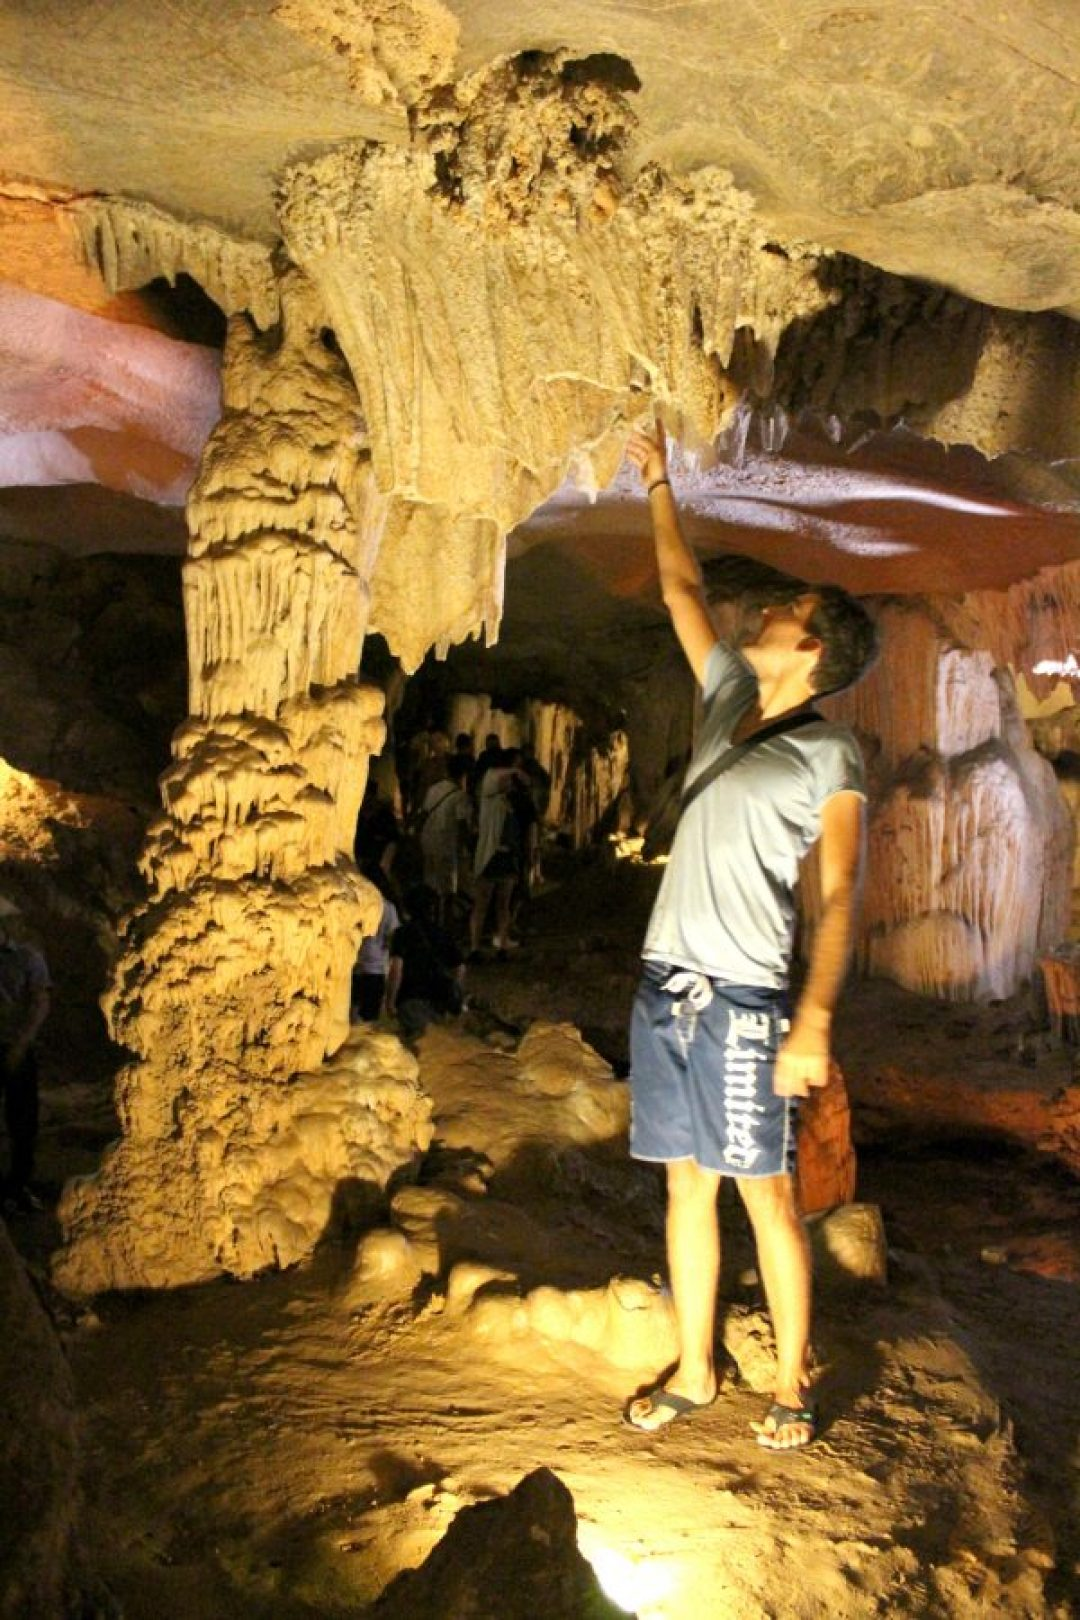 Thien Canh Son Cave